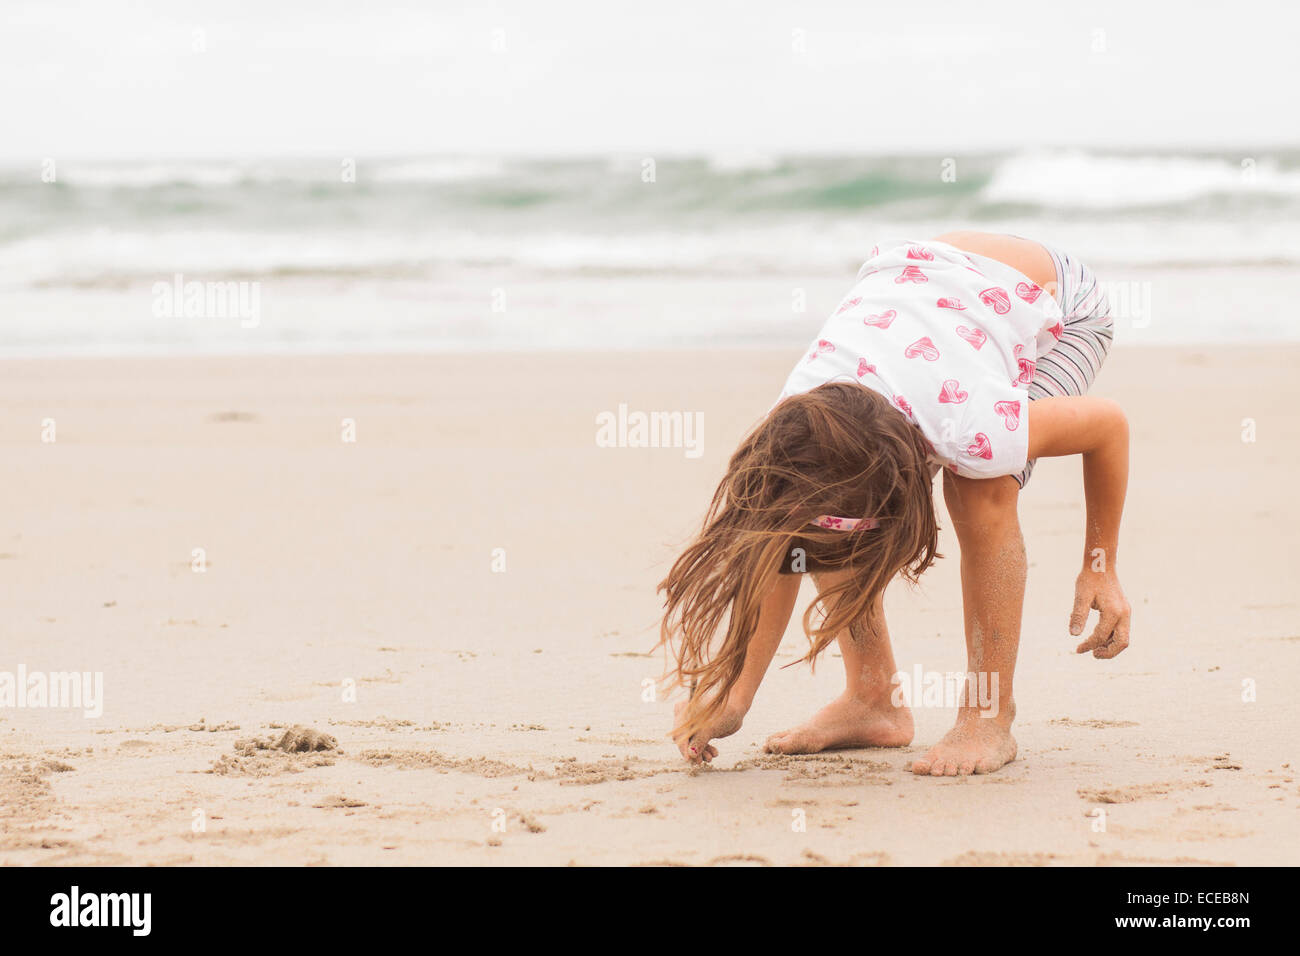 Girl (4-5) drawing in sand - Stock Image